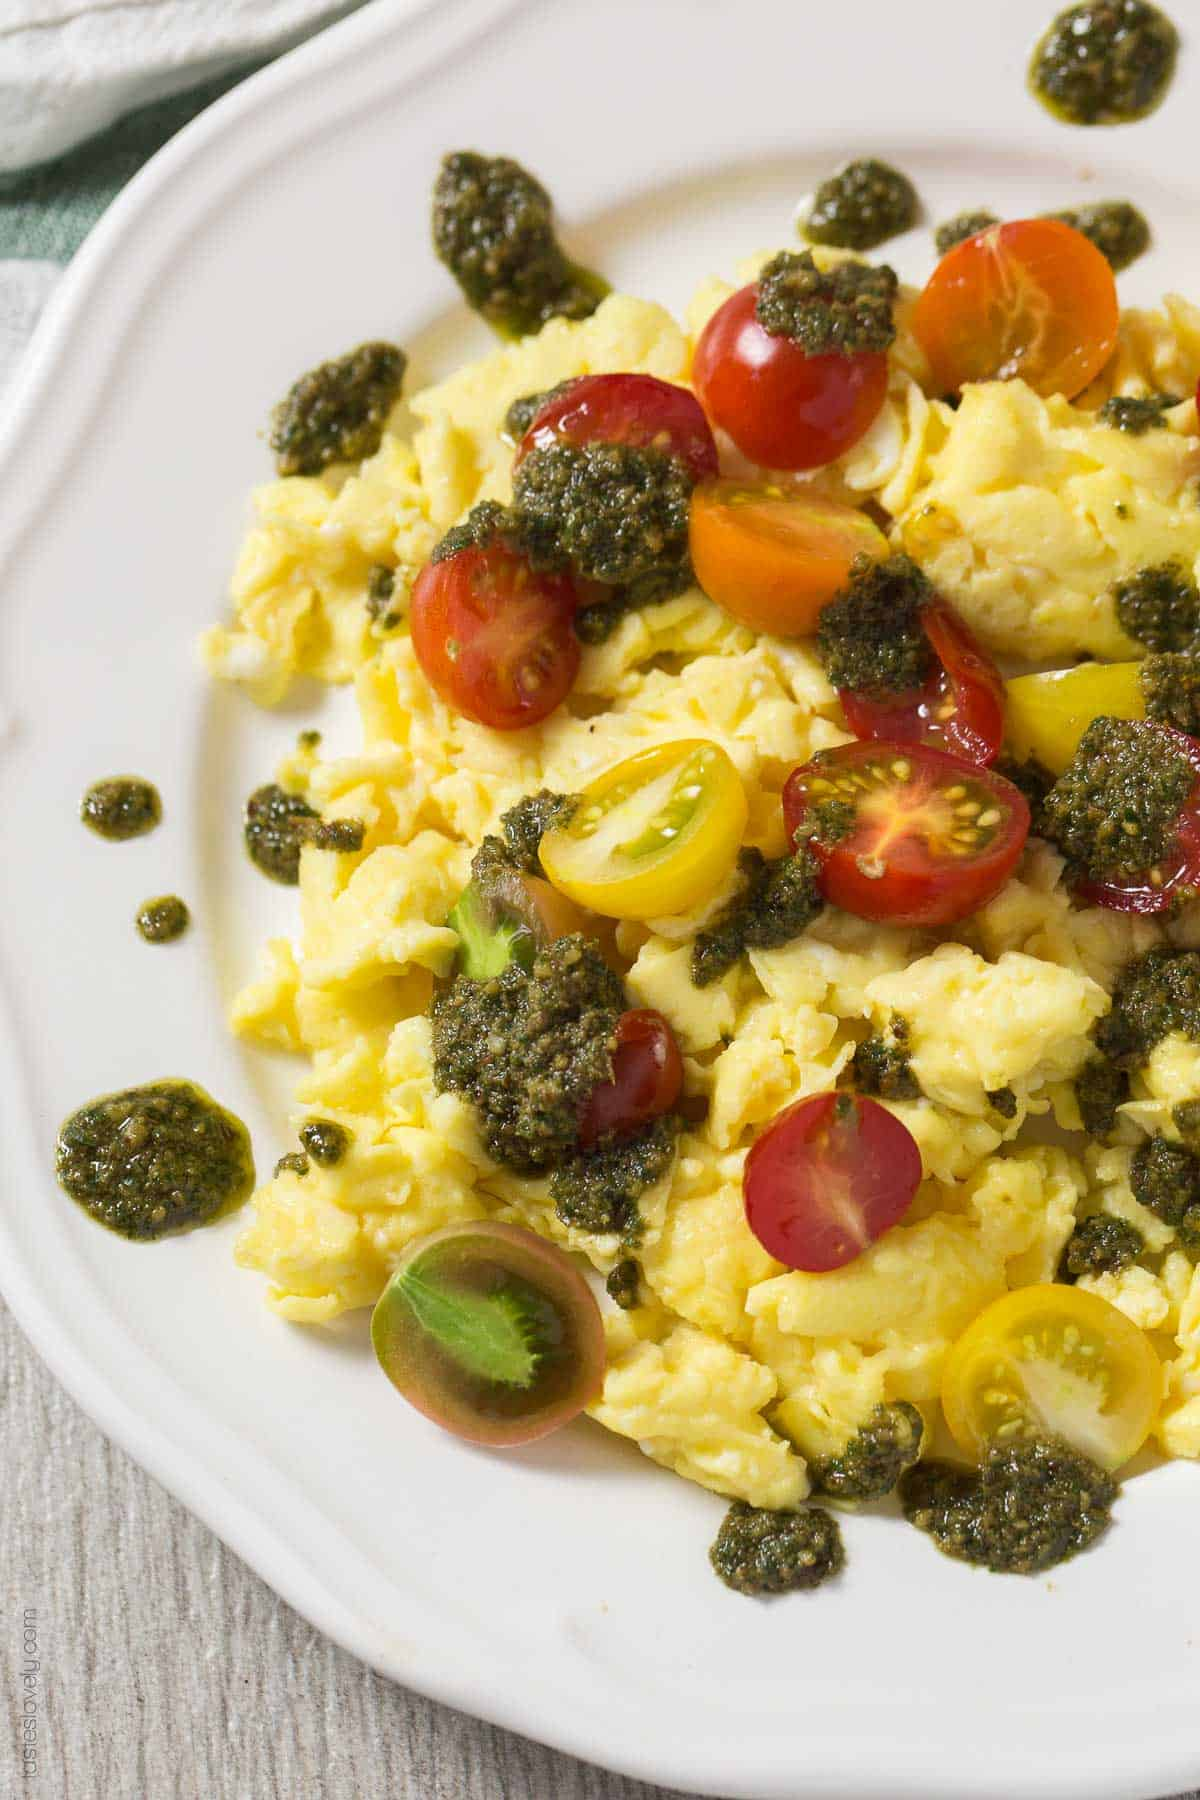 Scrambled Eggs with Cherry Tomatoes and Pesto - a healthy summer breakfast (Gluten Free, Paleo, Whole30, Low Carb)